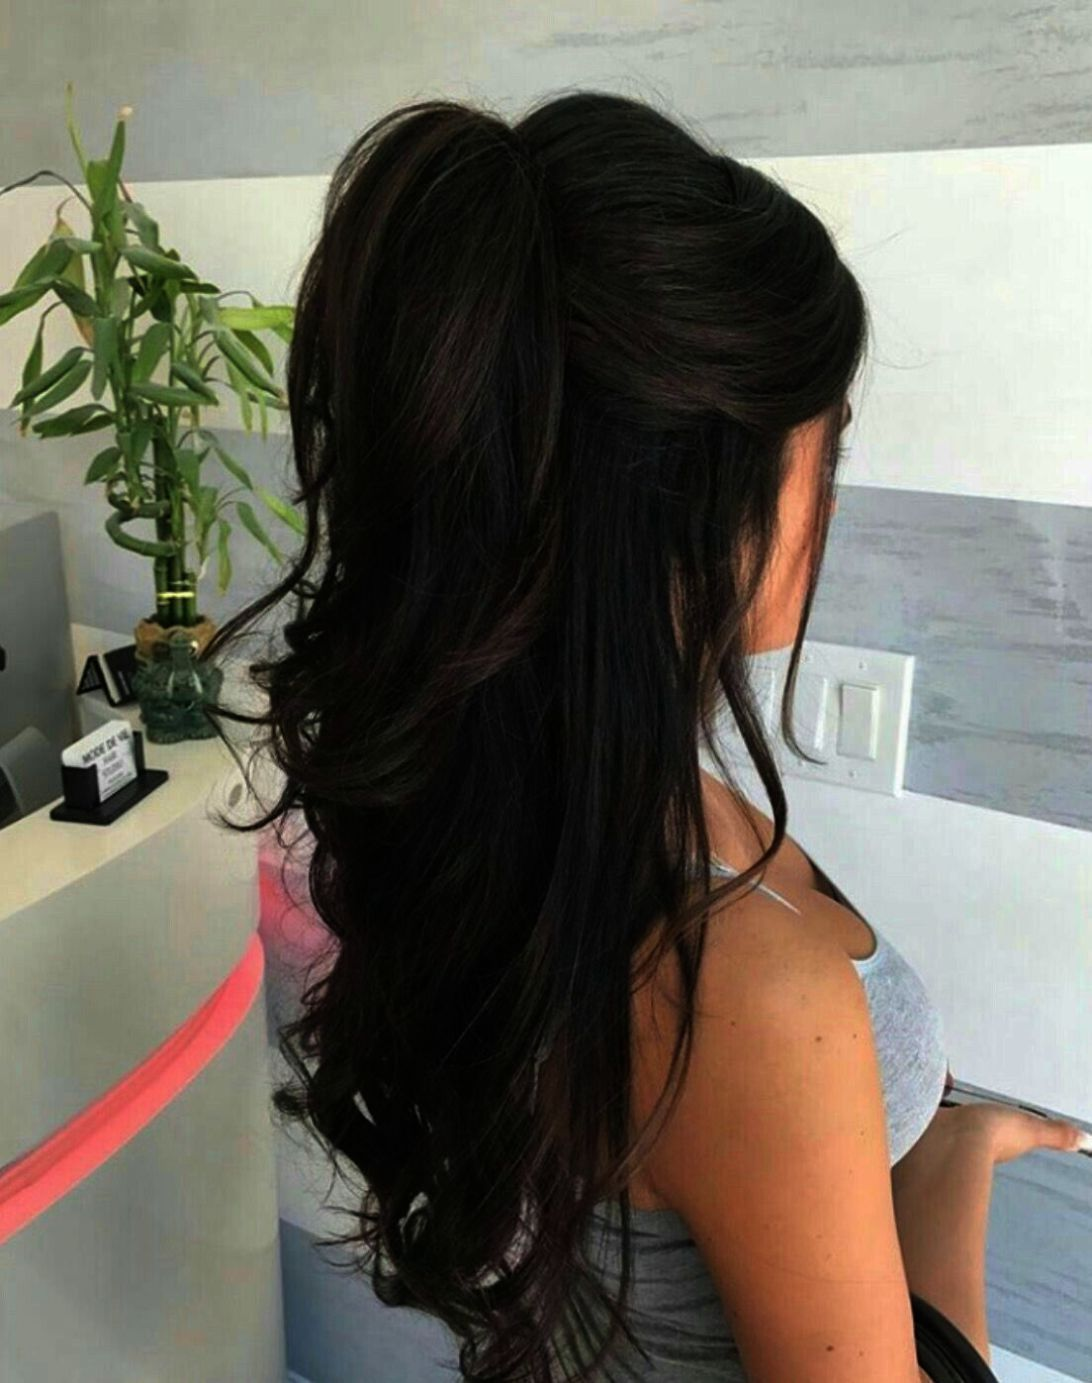 Haircut Salons Near Me In Haircut Low Fade Once Hair Salon In Queens Damp Hair Styles Curly Hair Styles Down Hairstyles